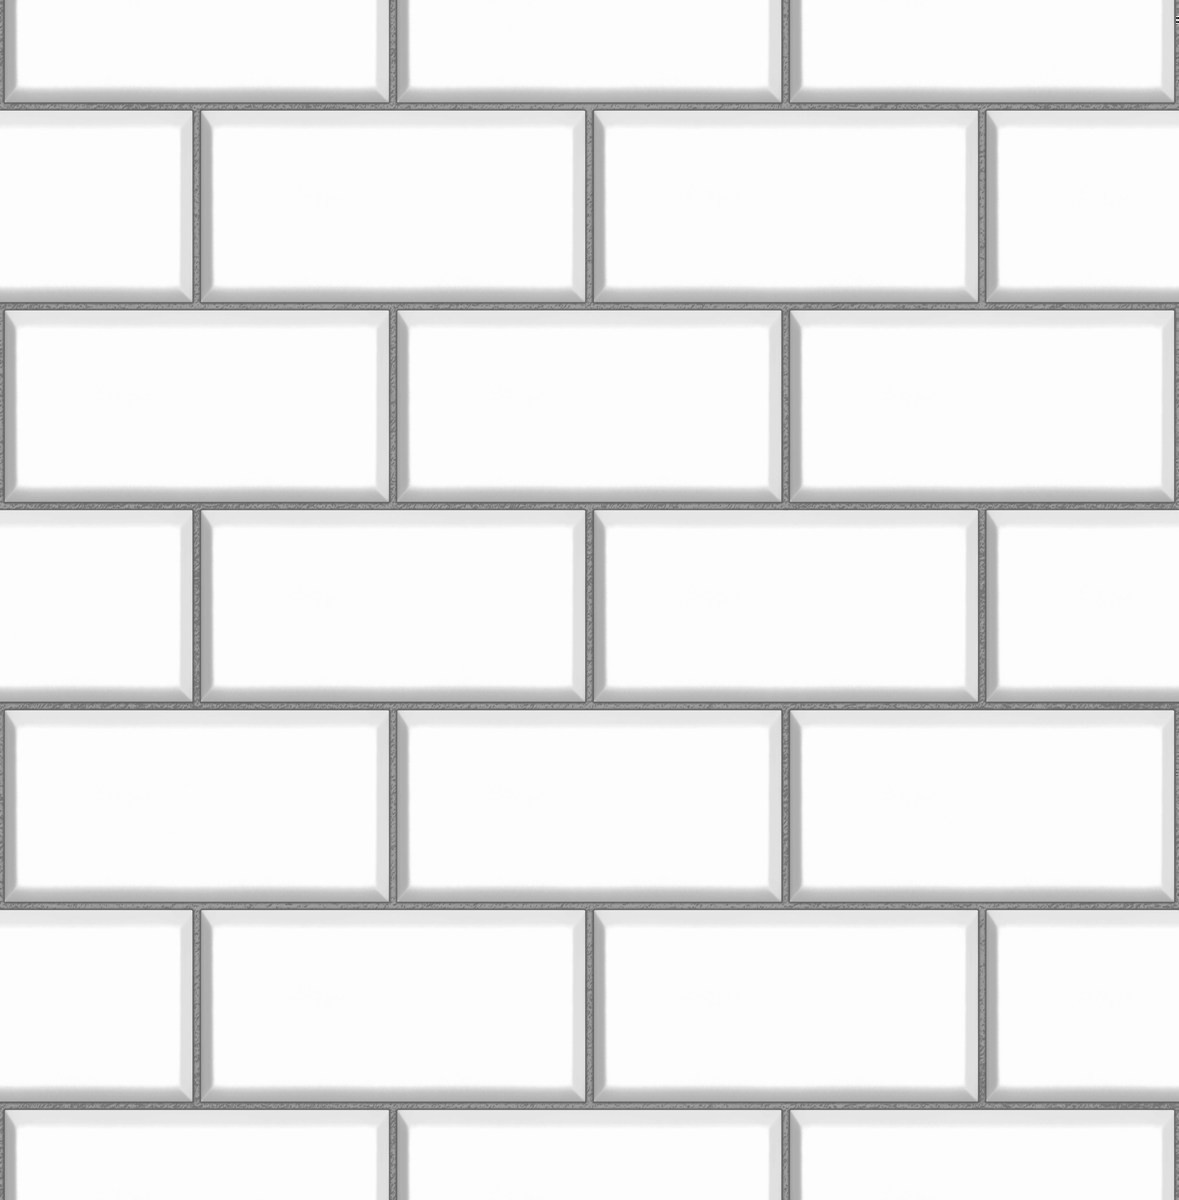 Pin Seamless Subway Tile Texture Seamless Foam Texture Mlmyz On